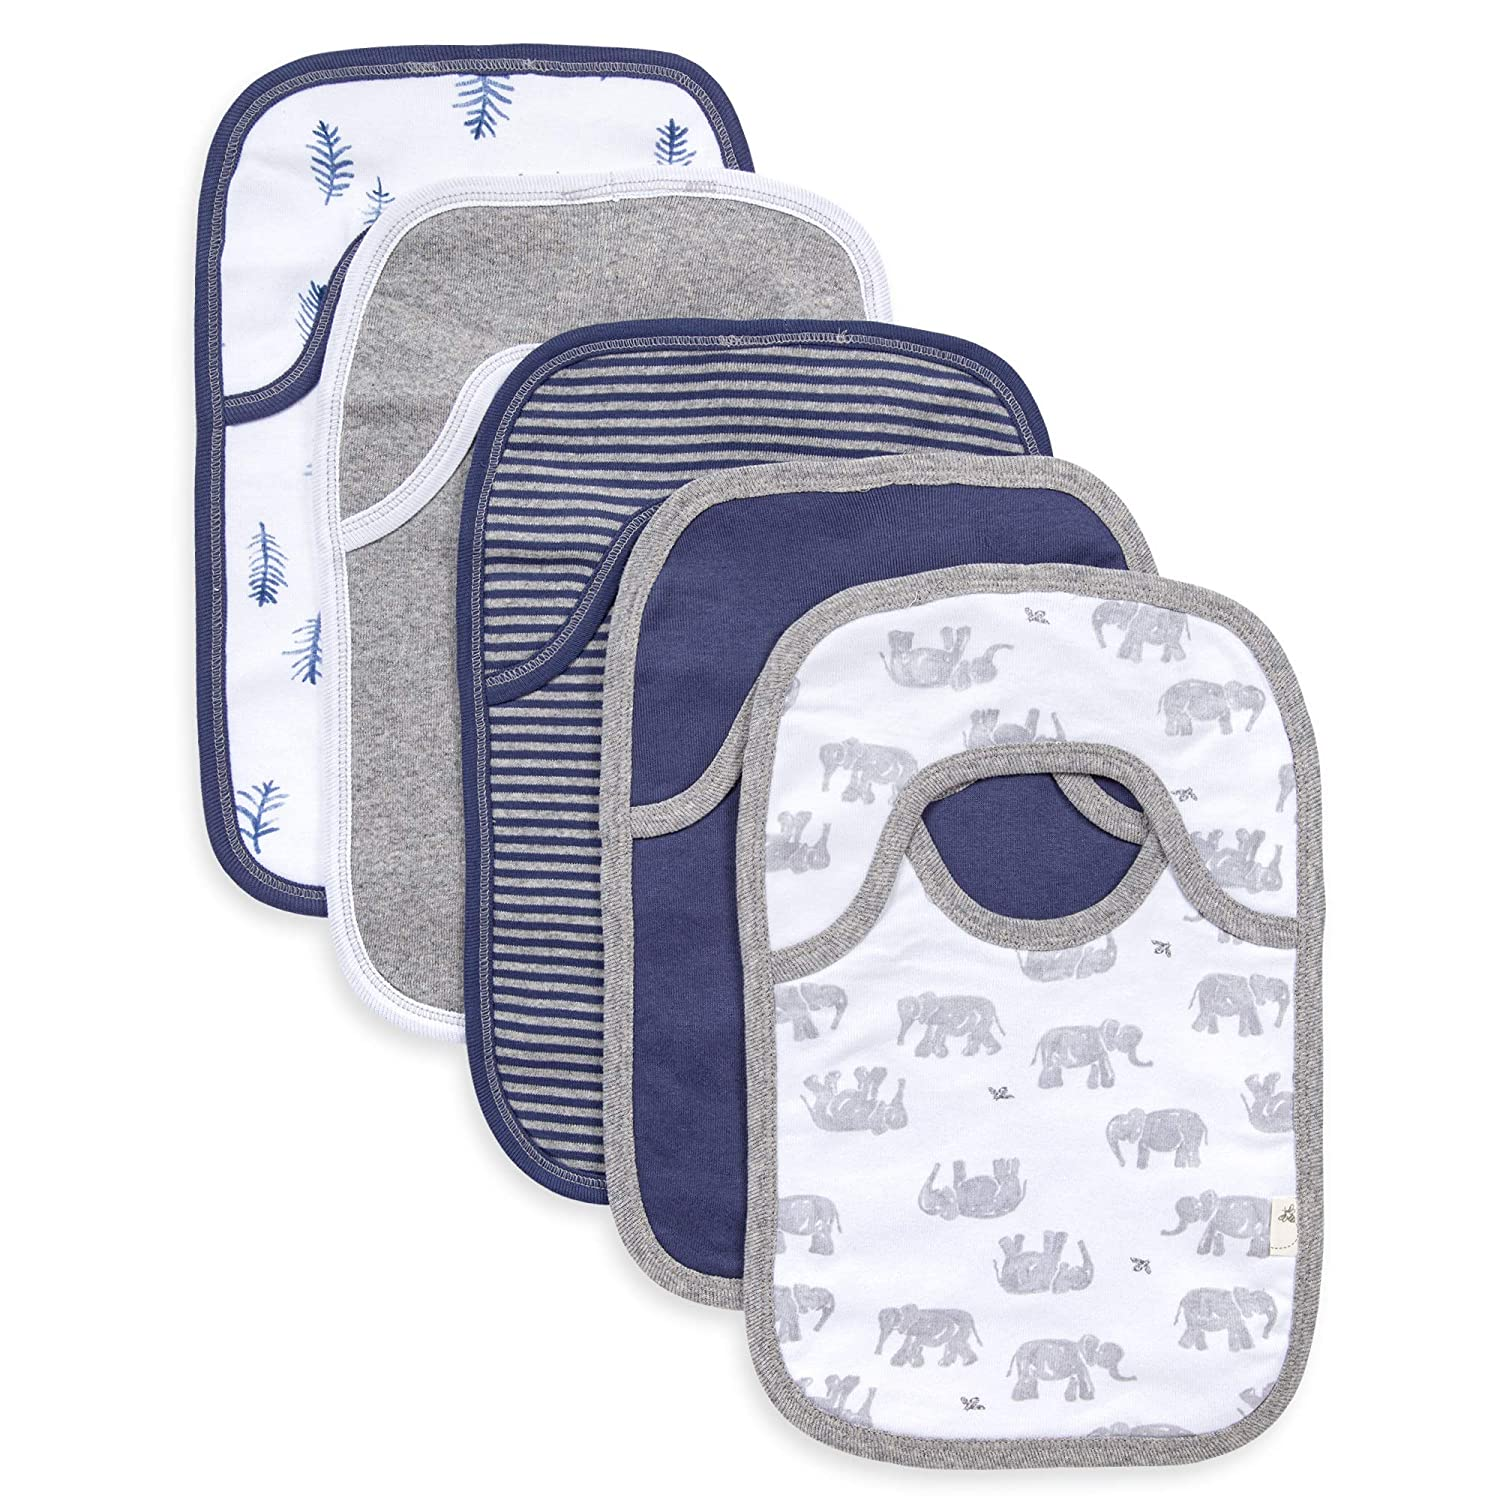 Burt's Bees Baby Bibs, 5-Pack Lap-Shoulder Drool Cloths, 100% Organic Cotton with Absorbent Terry Towel Backing (Wandering Elephants)